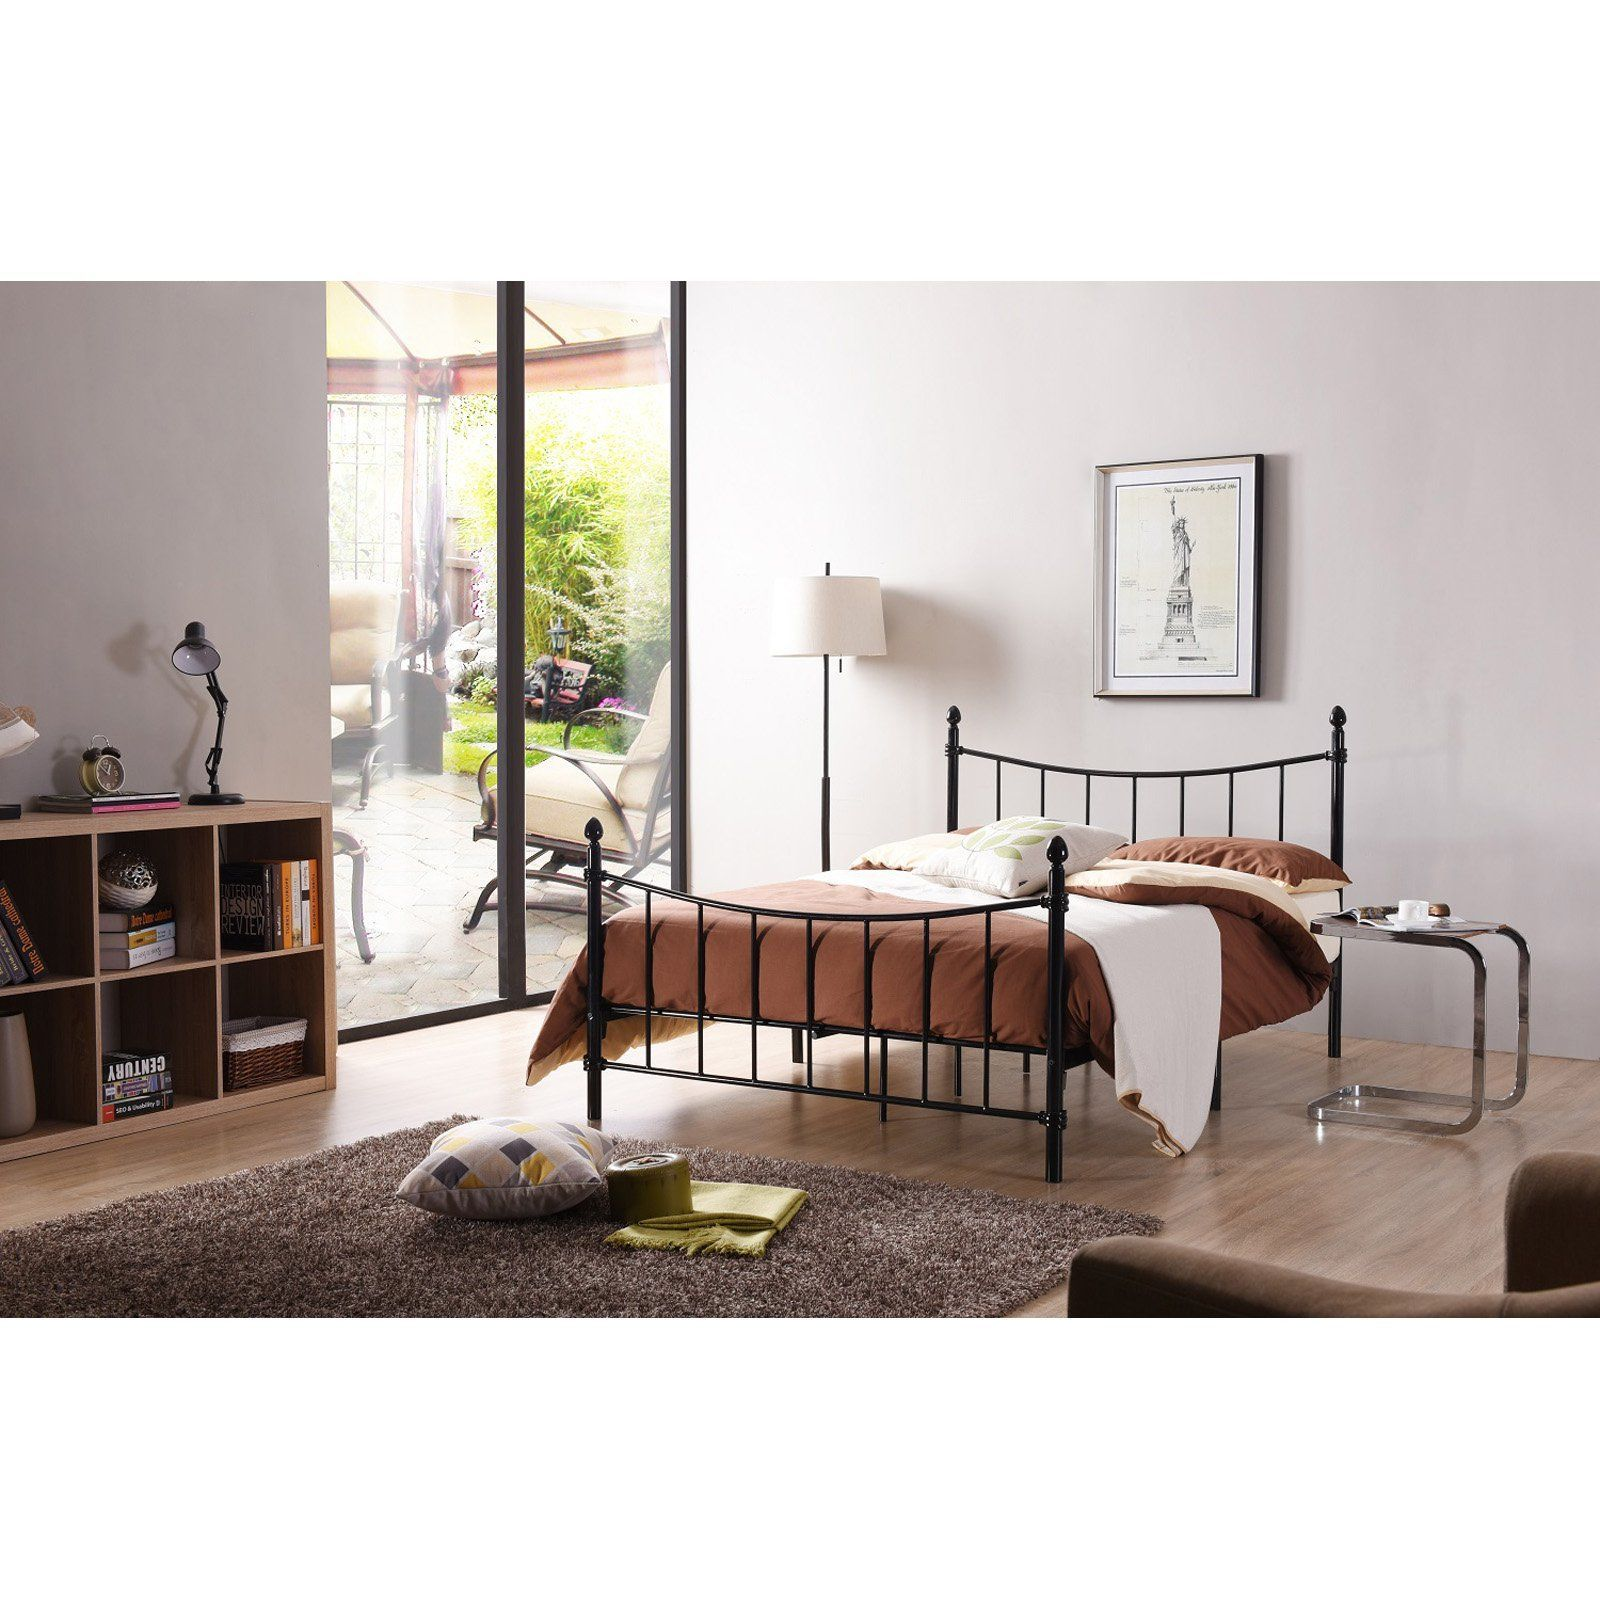 Hodedah Imports Curved Metal Poster Bed Poster Bed Metal Beds Bed